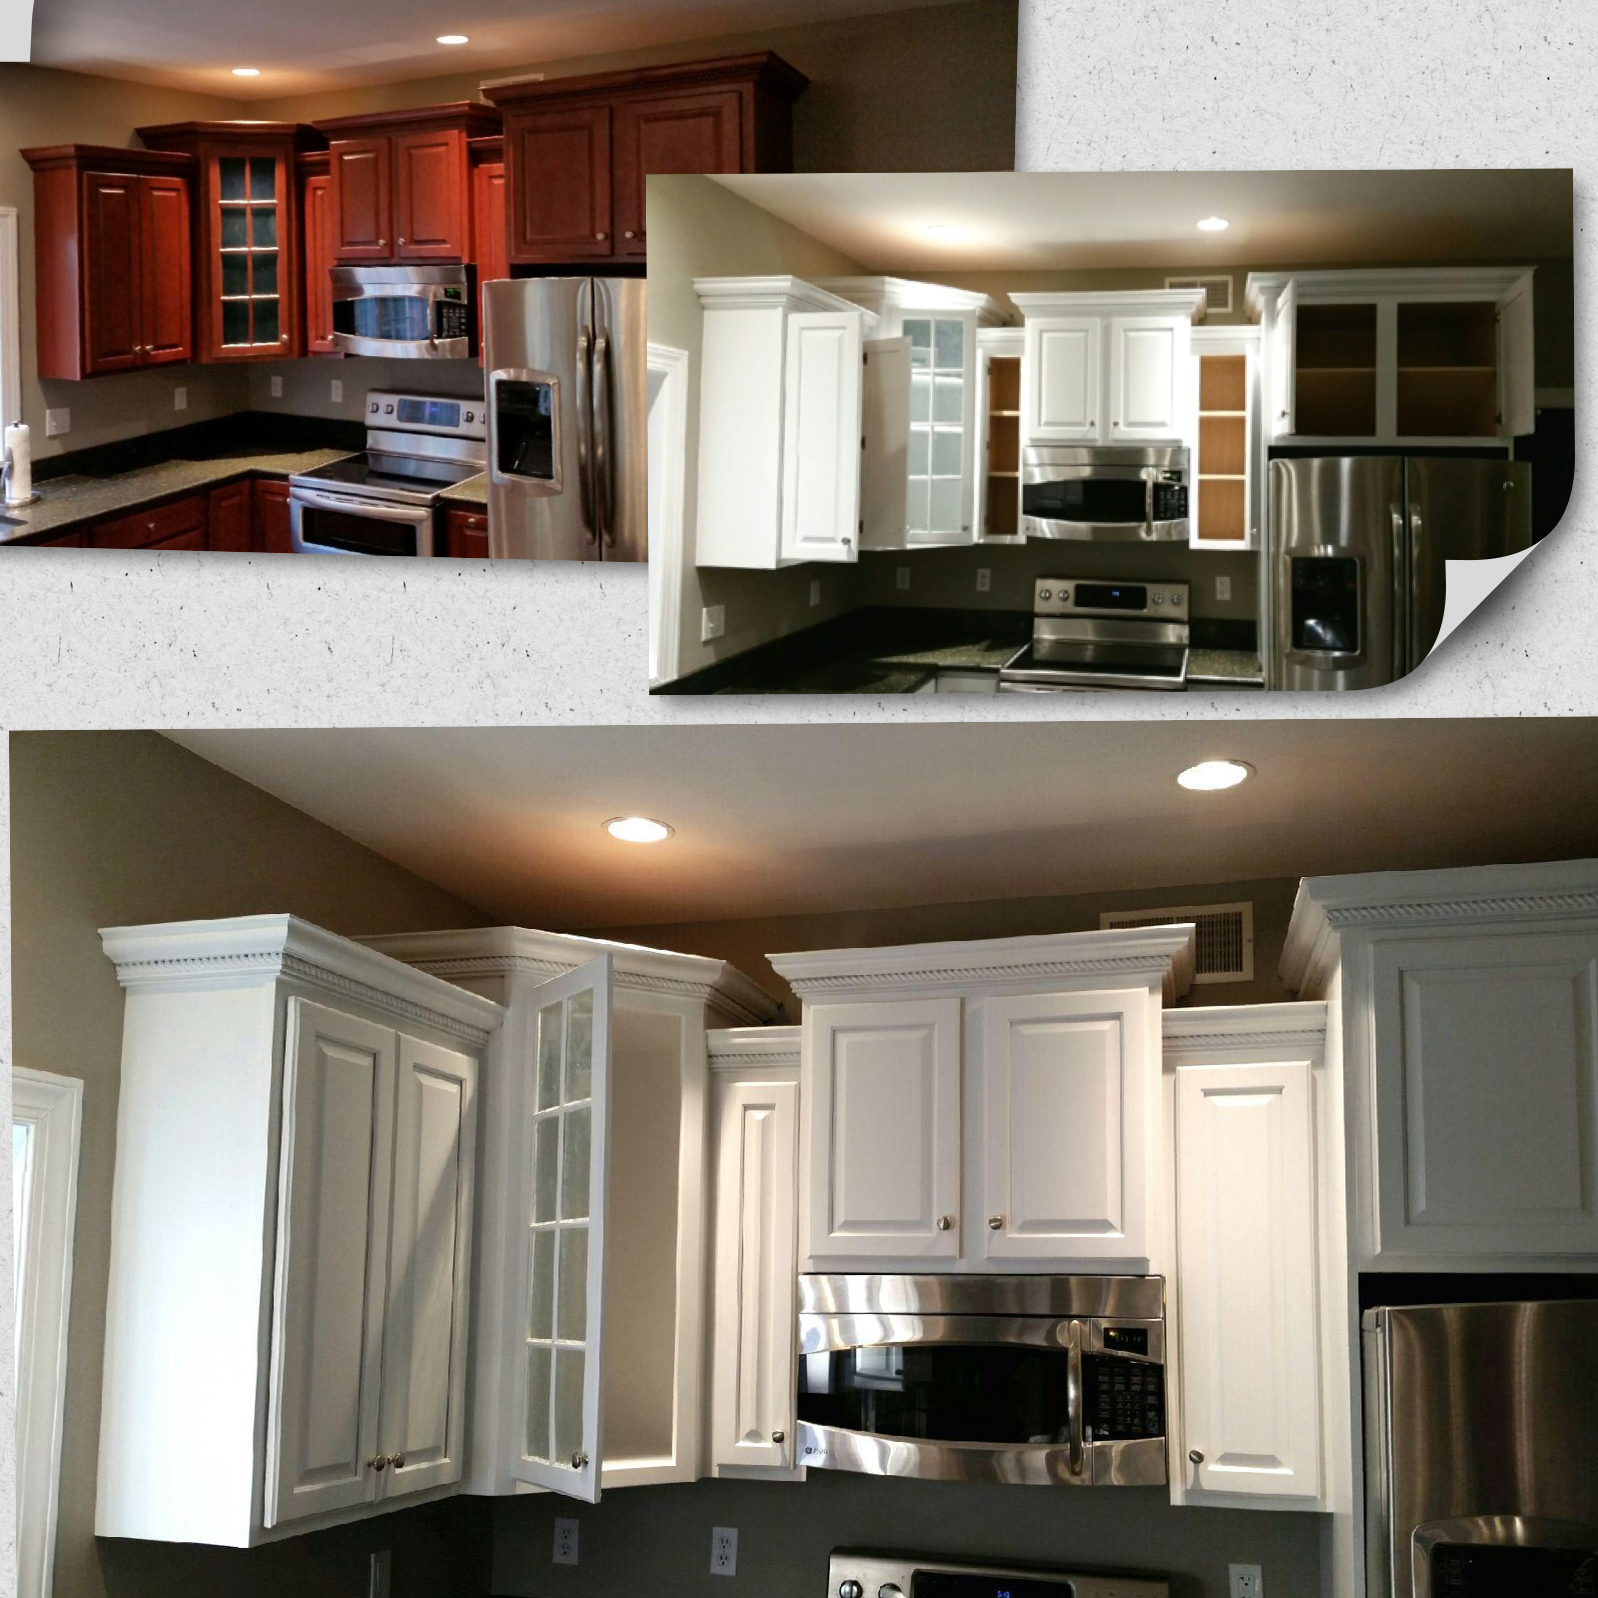 Cabinets In Mechanicsburg, PA 17055